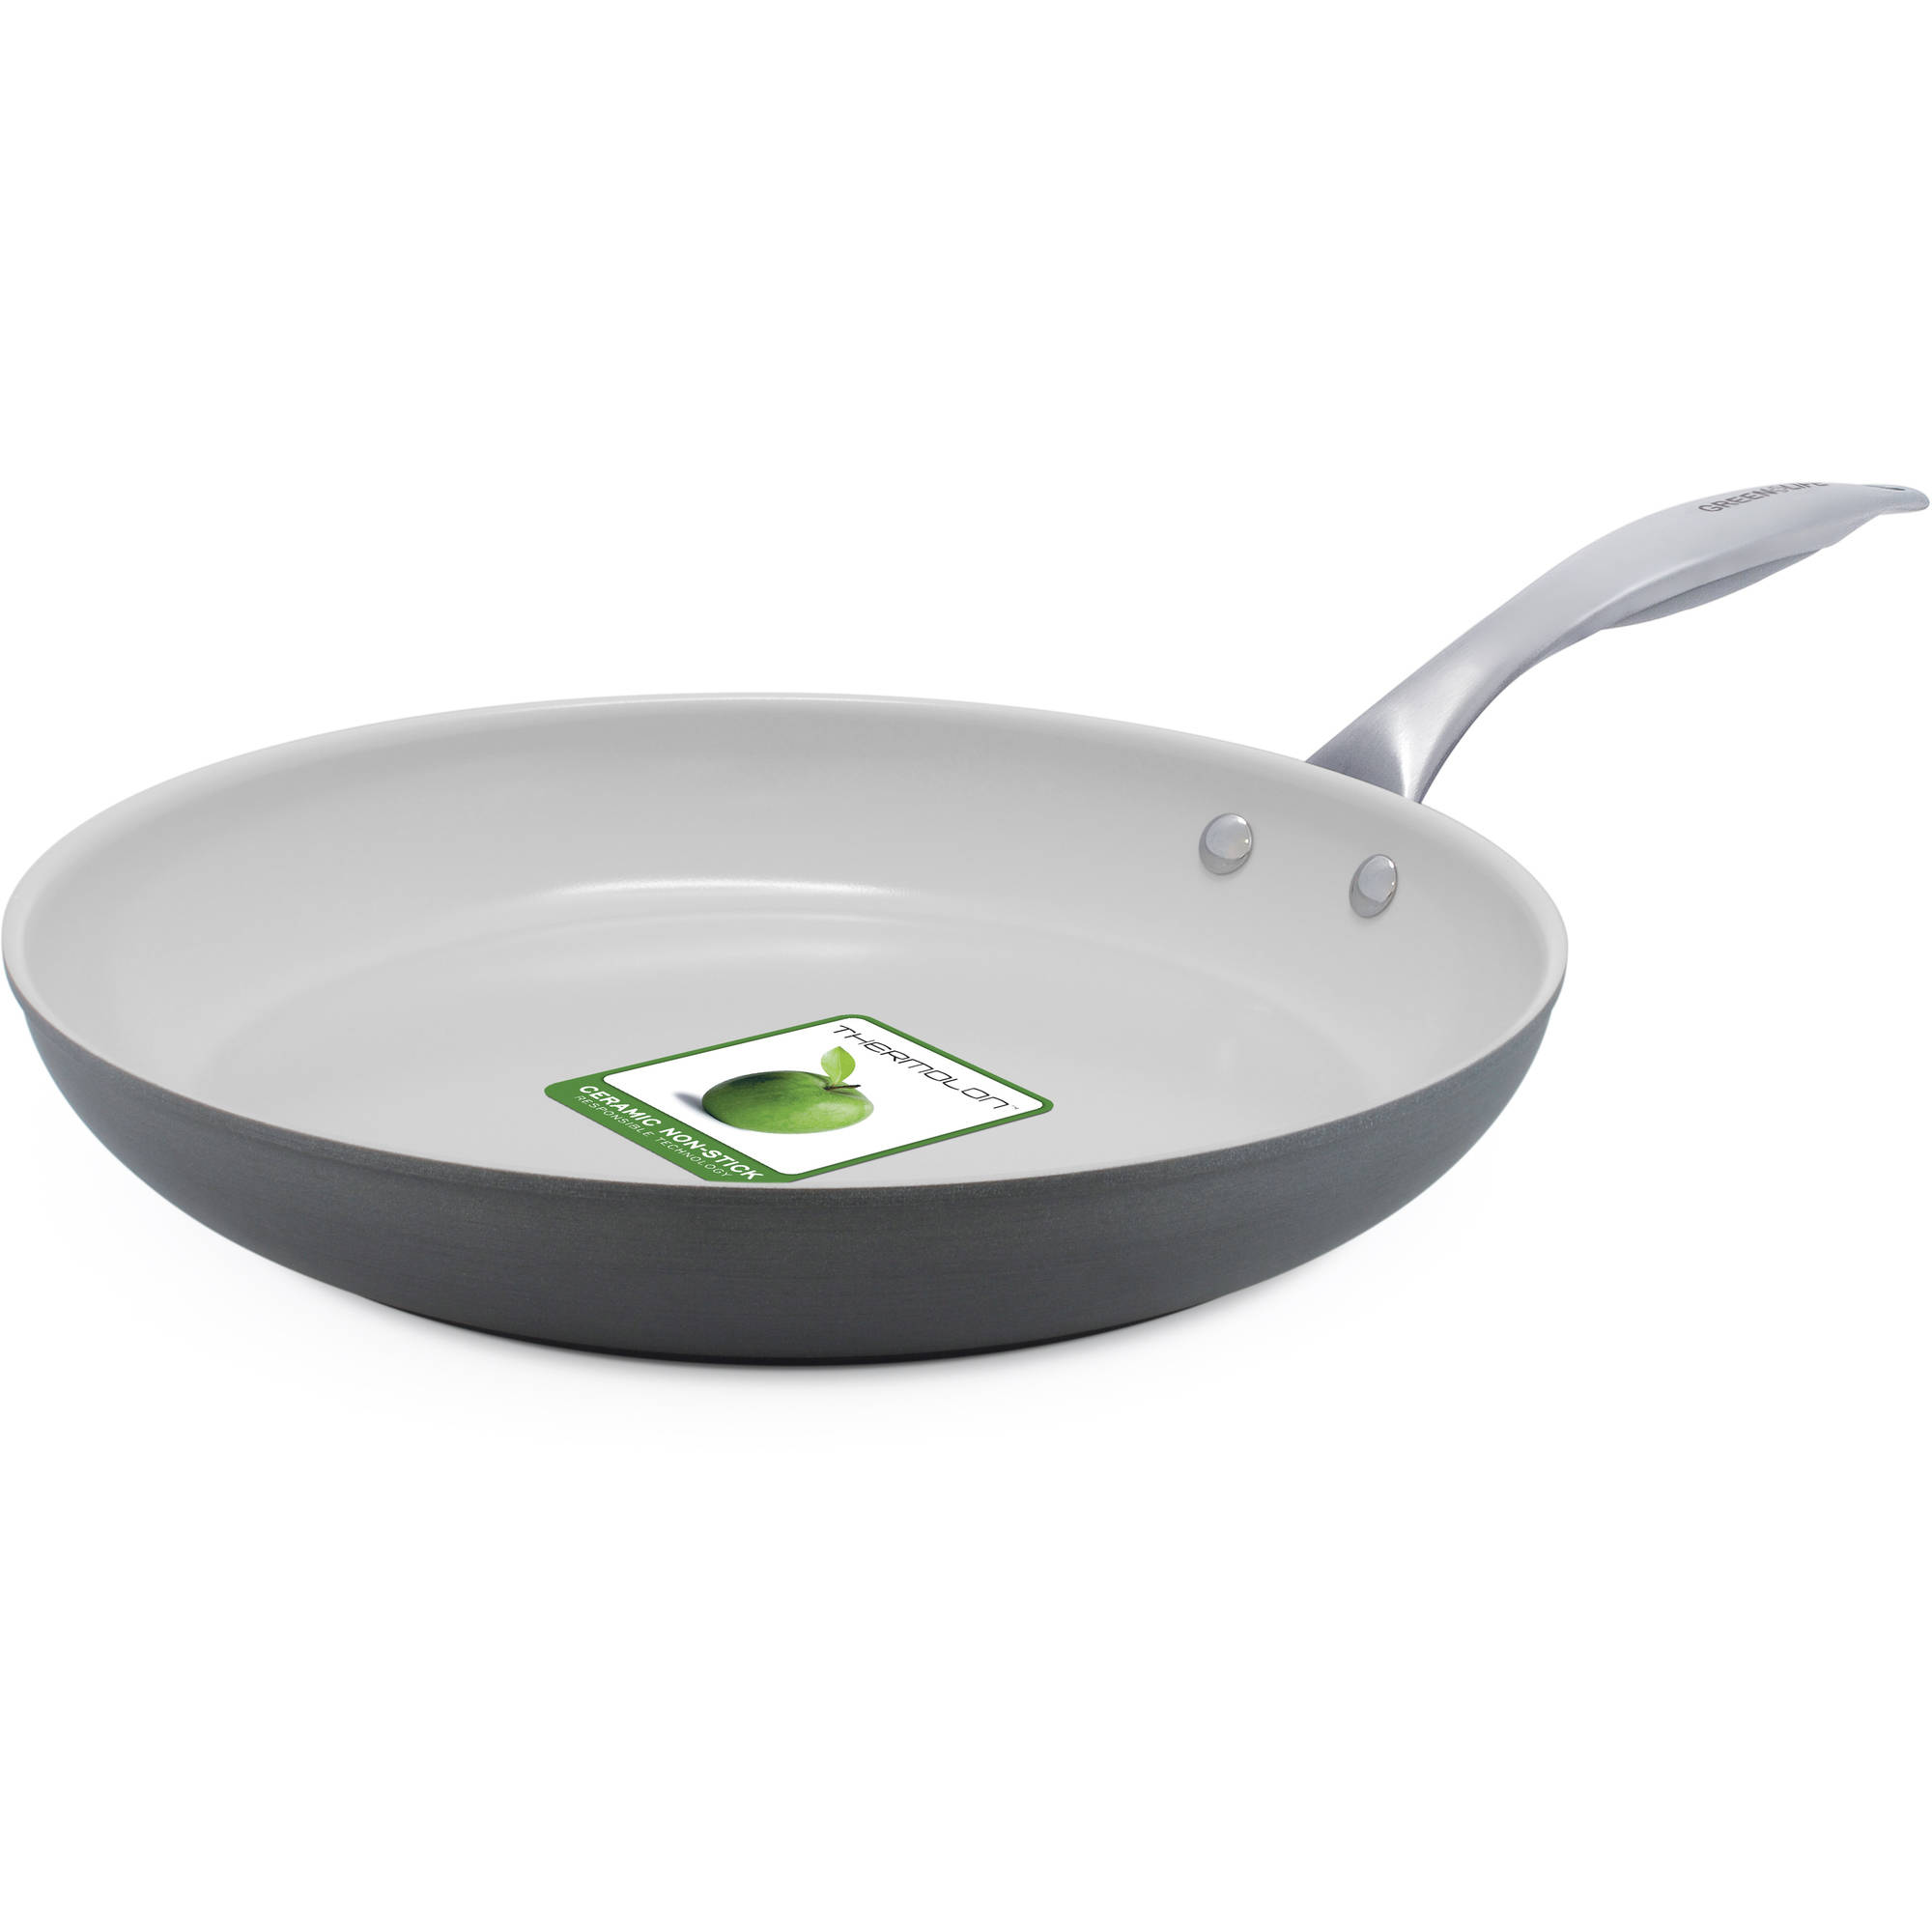 GreenLife Classic Hard Anodized Absolutely Toxin-Free Healthy Ceramic Non-Stick,12-Inch Frying Pan by The Cookware Company